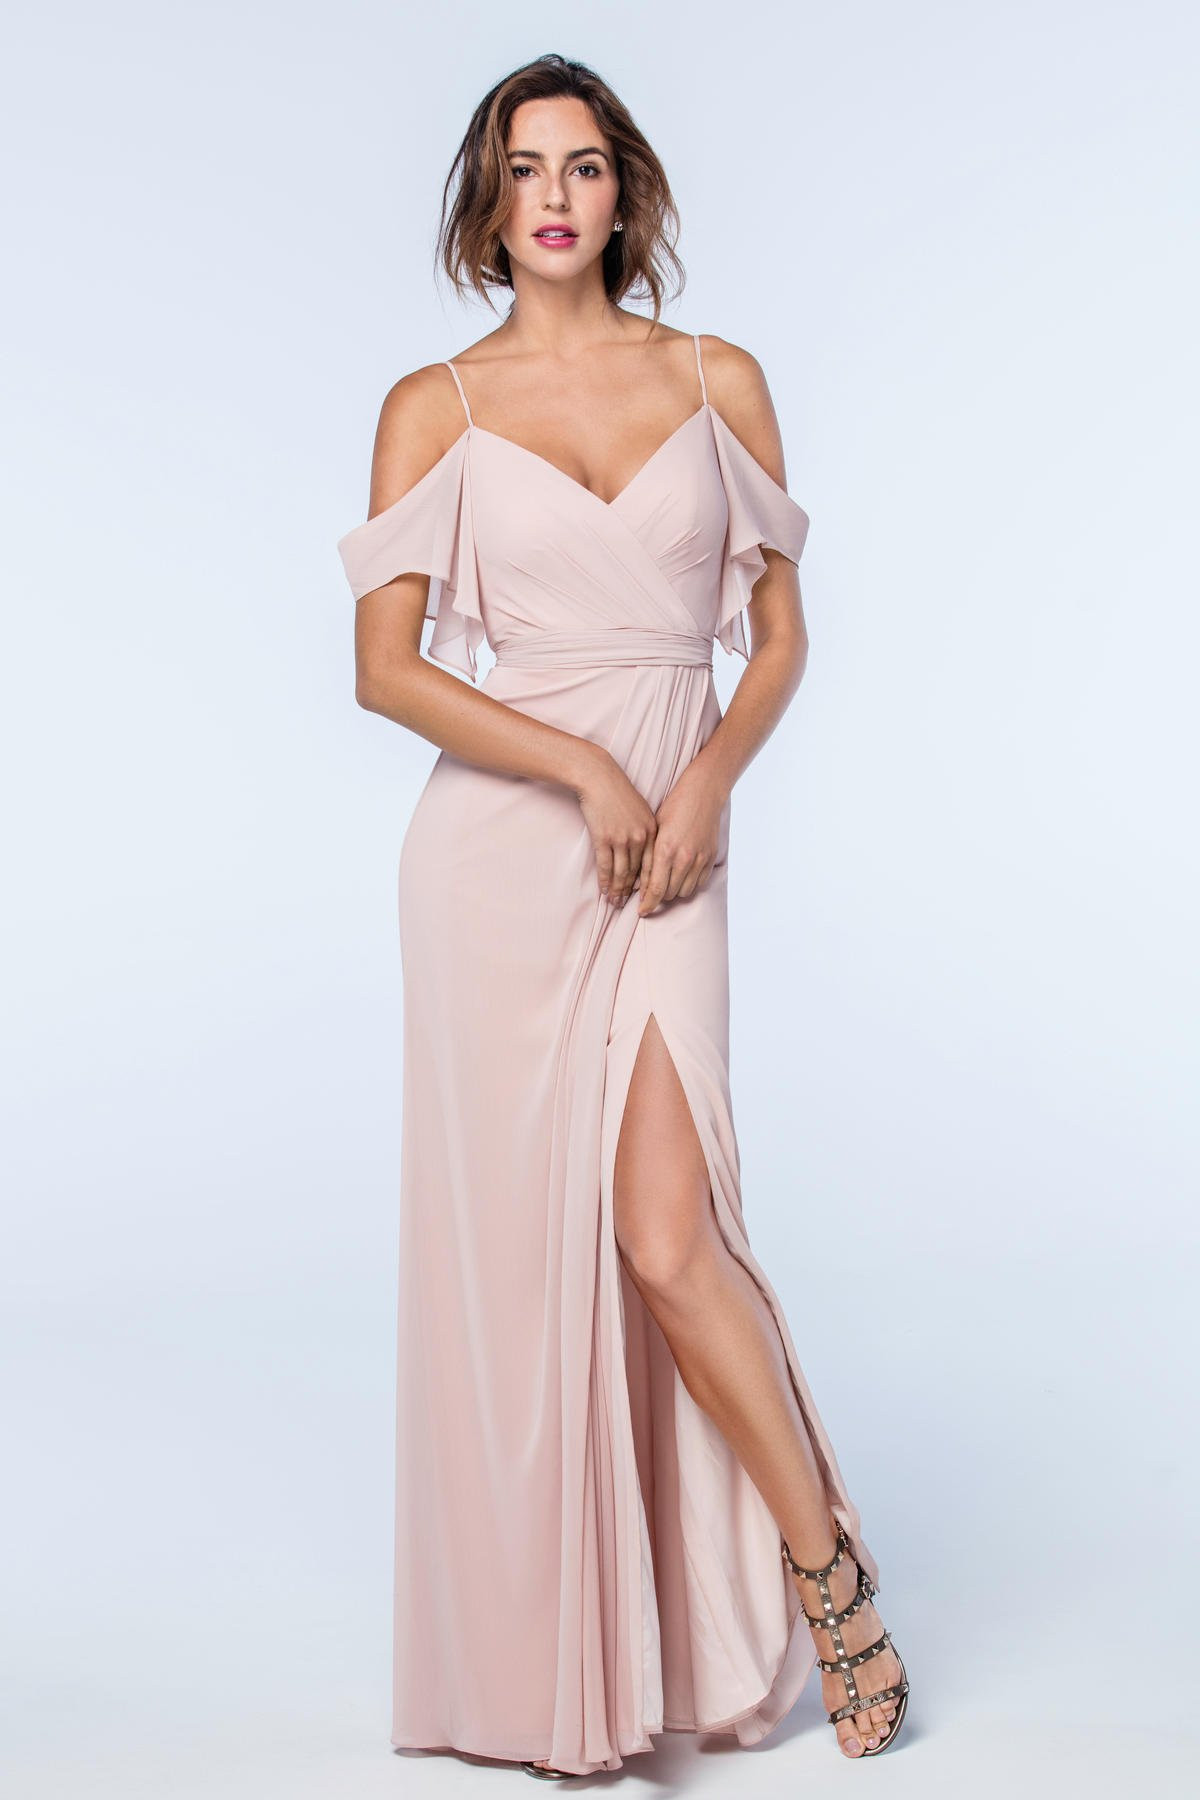 2511 Watters Bridesmaid Dress. Watters Maids at Bridals by Lori Atlanta. Watters bridesmaids gowns